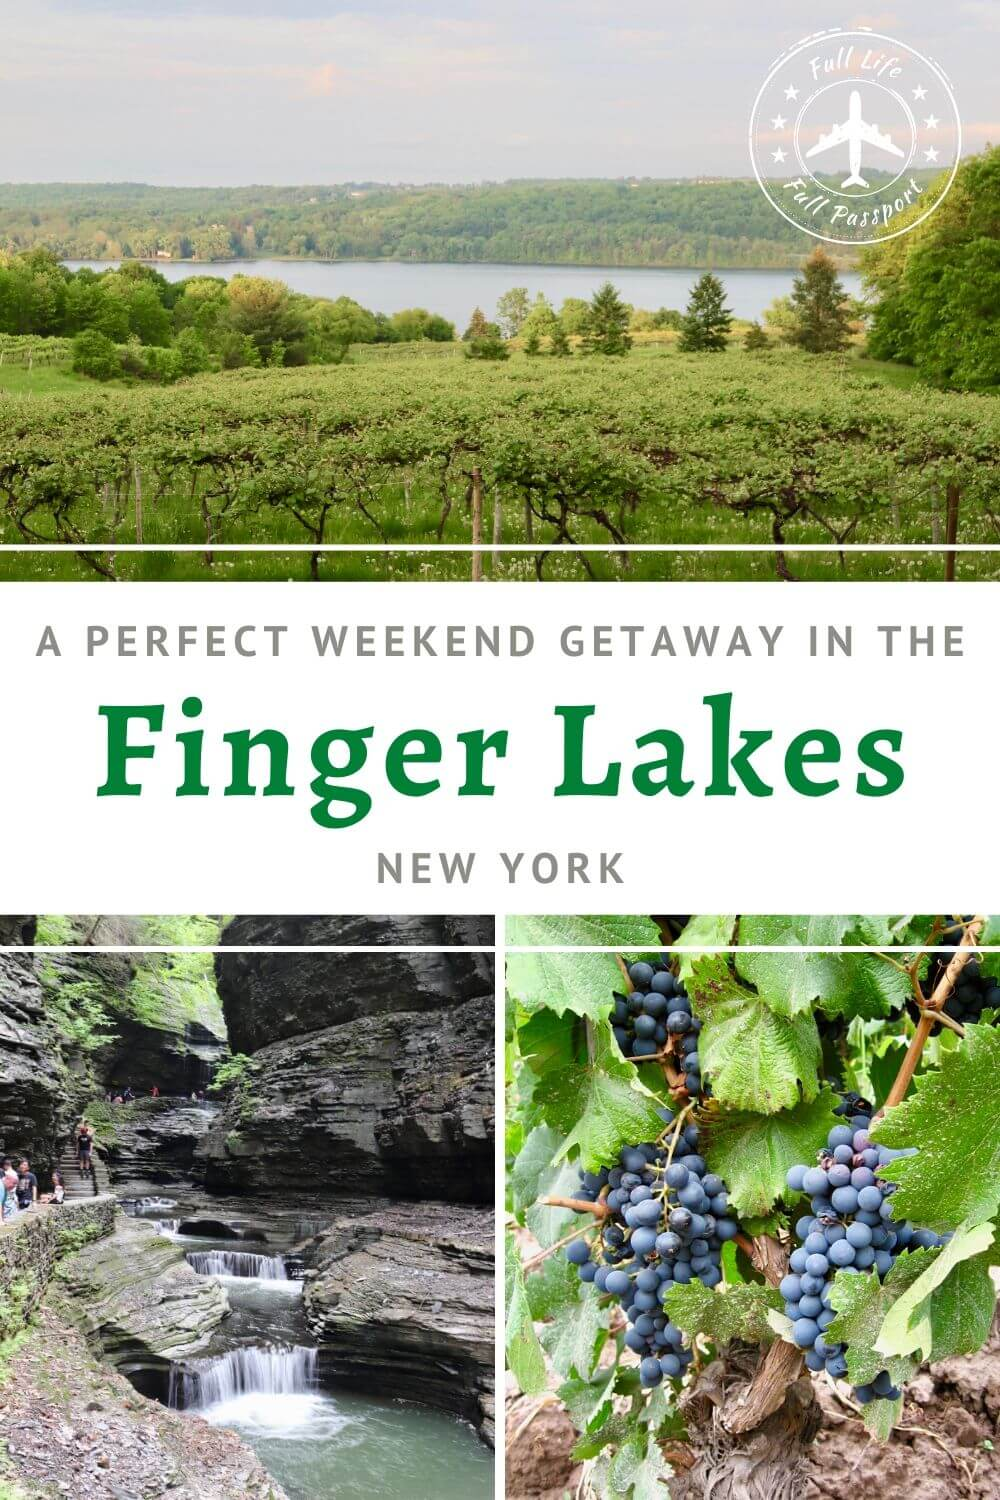 A Long Weekend Getaway in the Finger Lakes